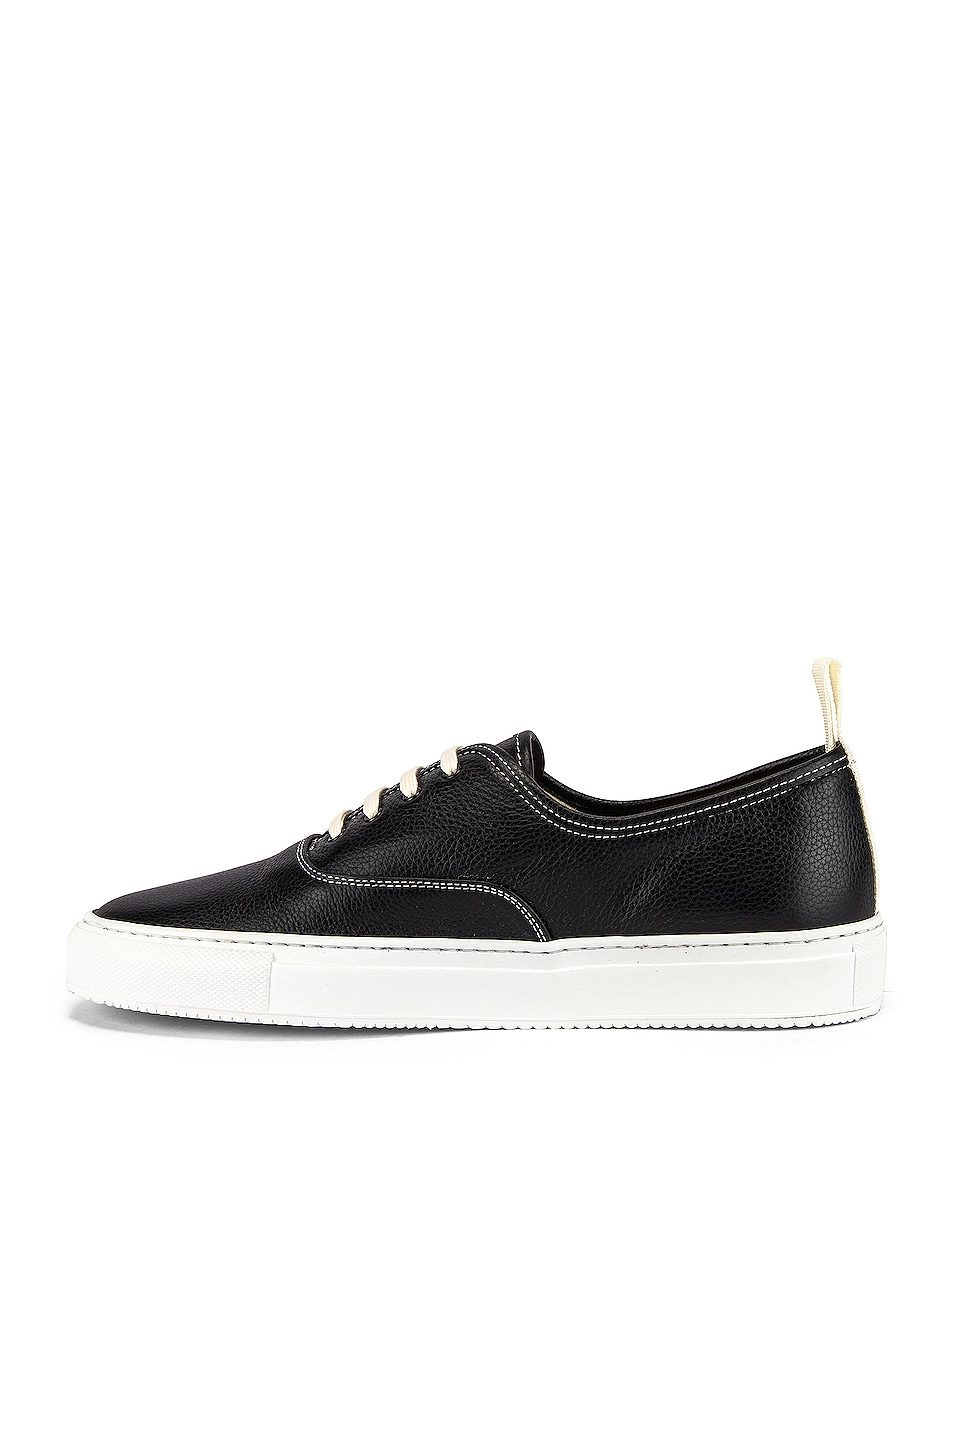 Image 5 of Common Projects Four Hole in Leather Low Sneaker in Black & White